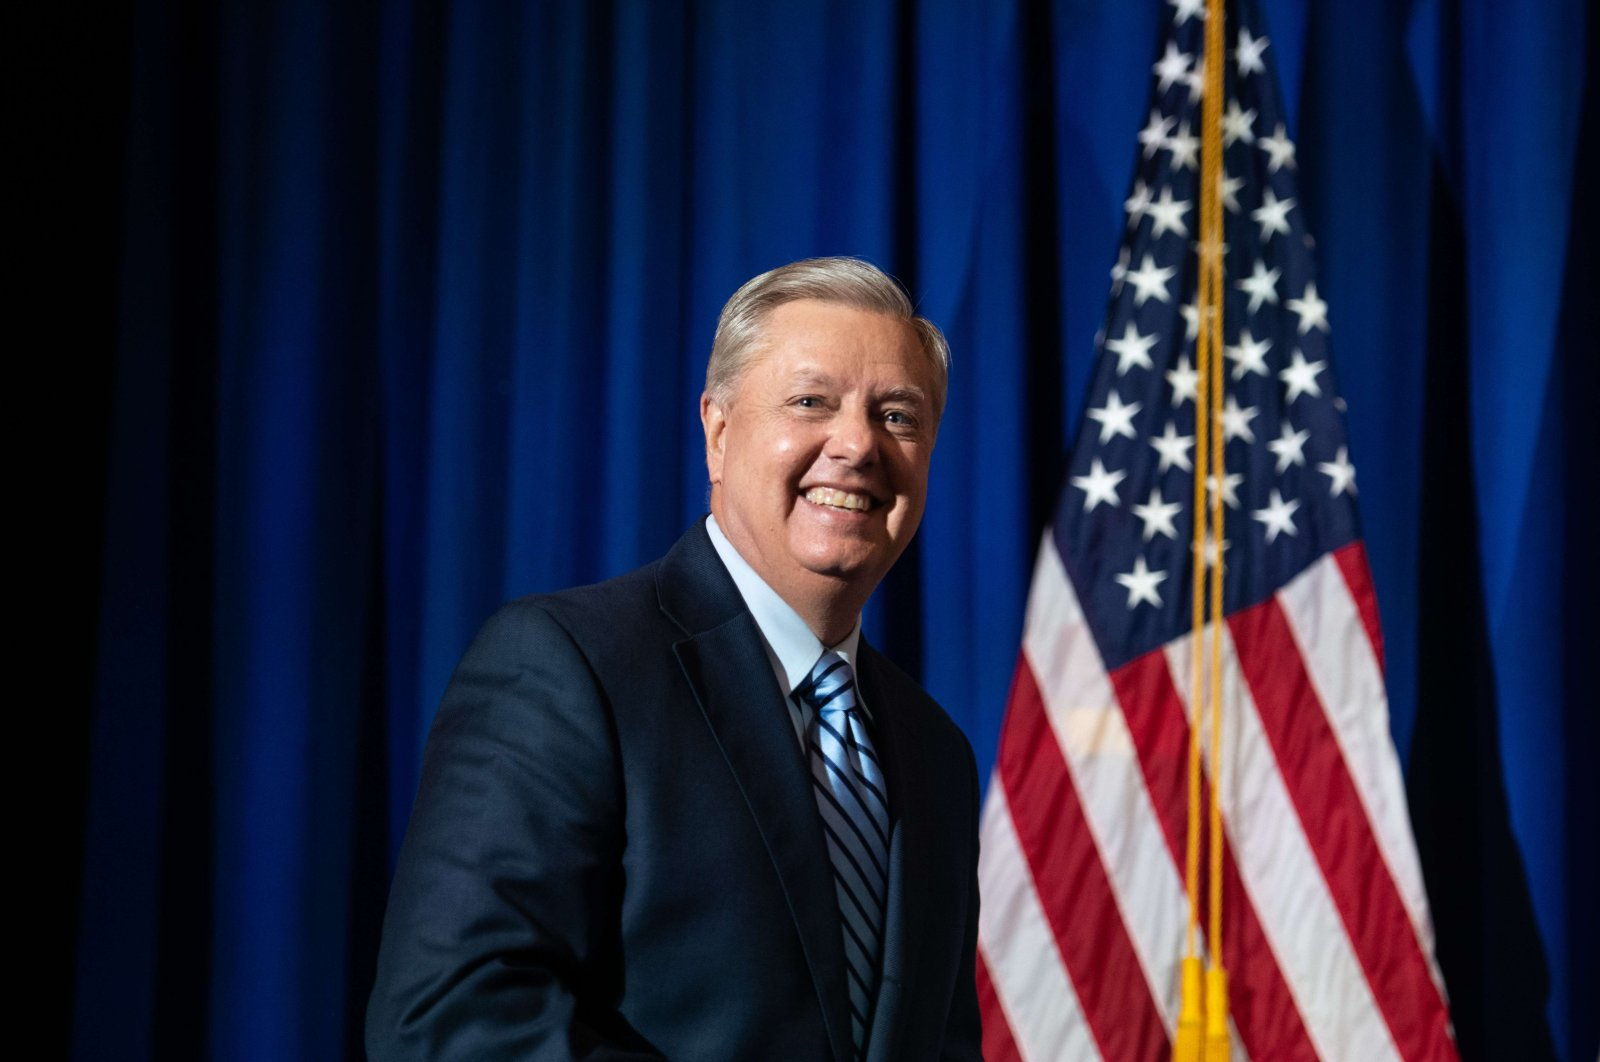 U.S. Sen. Lindsey Graham walks on stage after a win during his election night party, Columbia, South Carolina, Nov. 3, 2020. (AFP Photo)